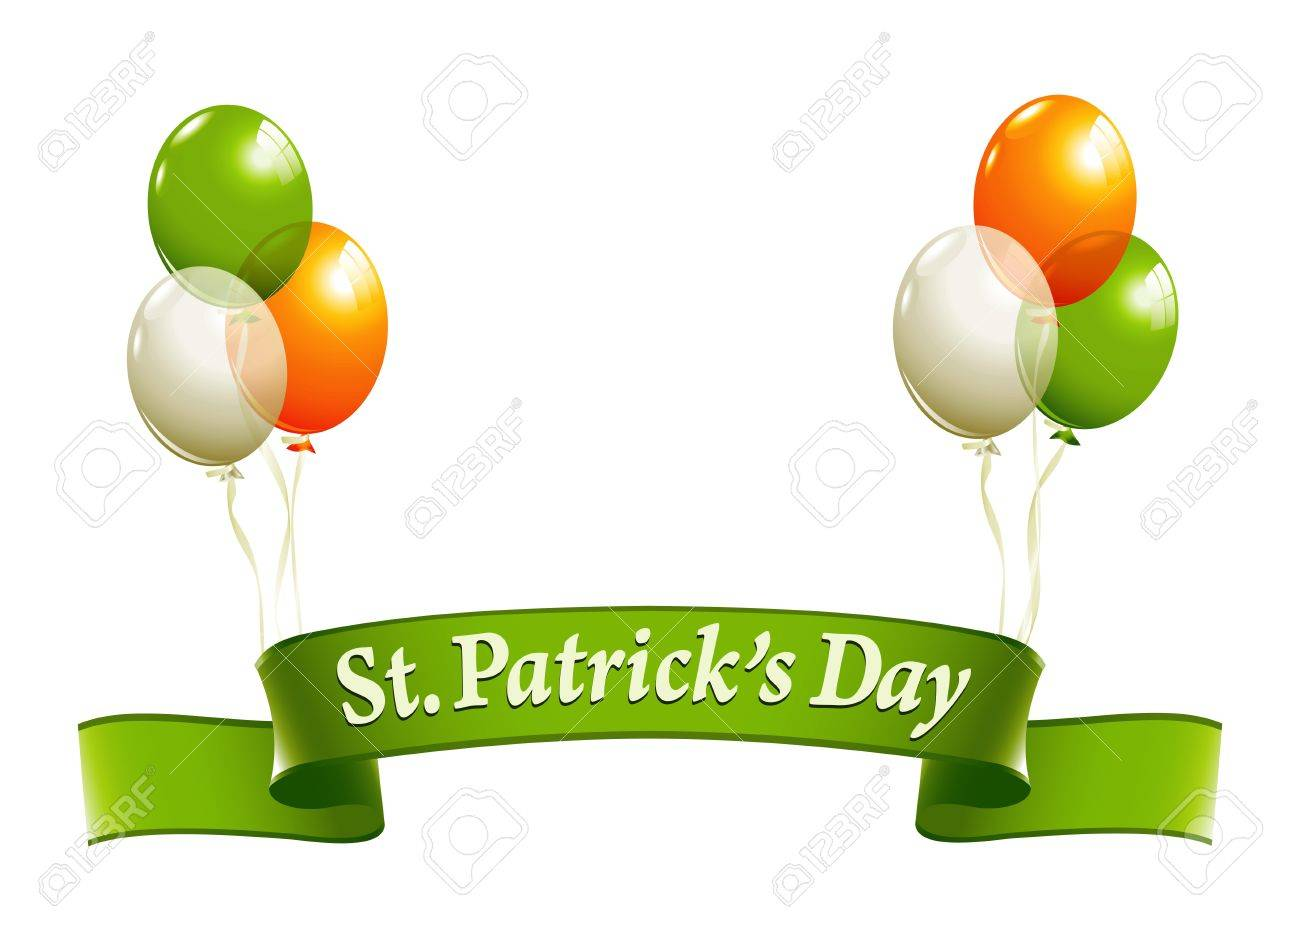 st patrick u0027s day banner with balloons in irish colors royalty free